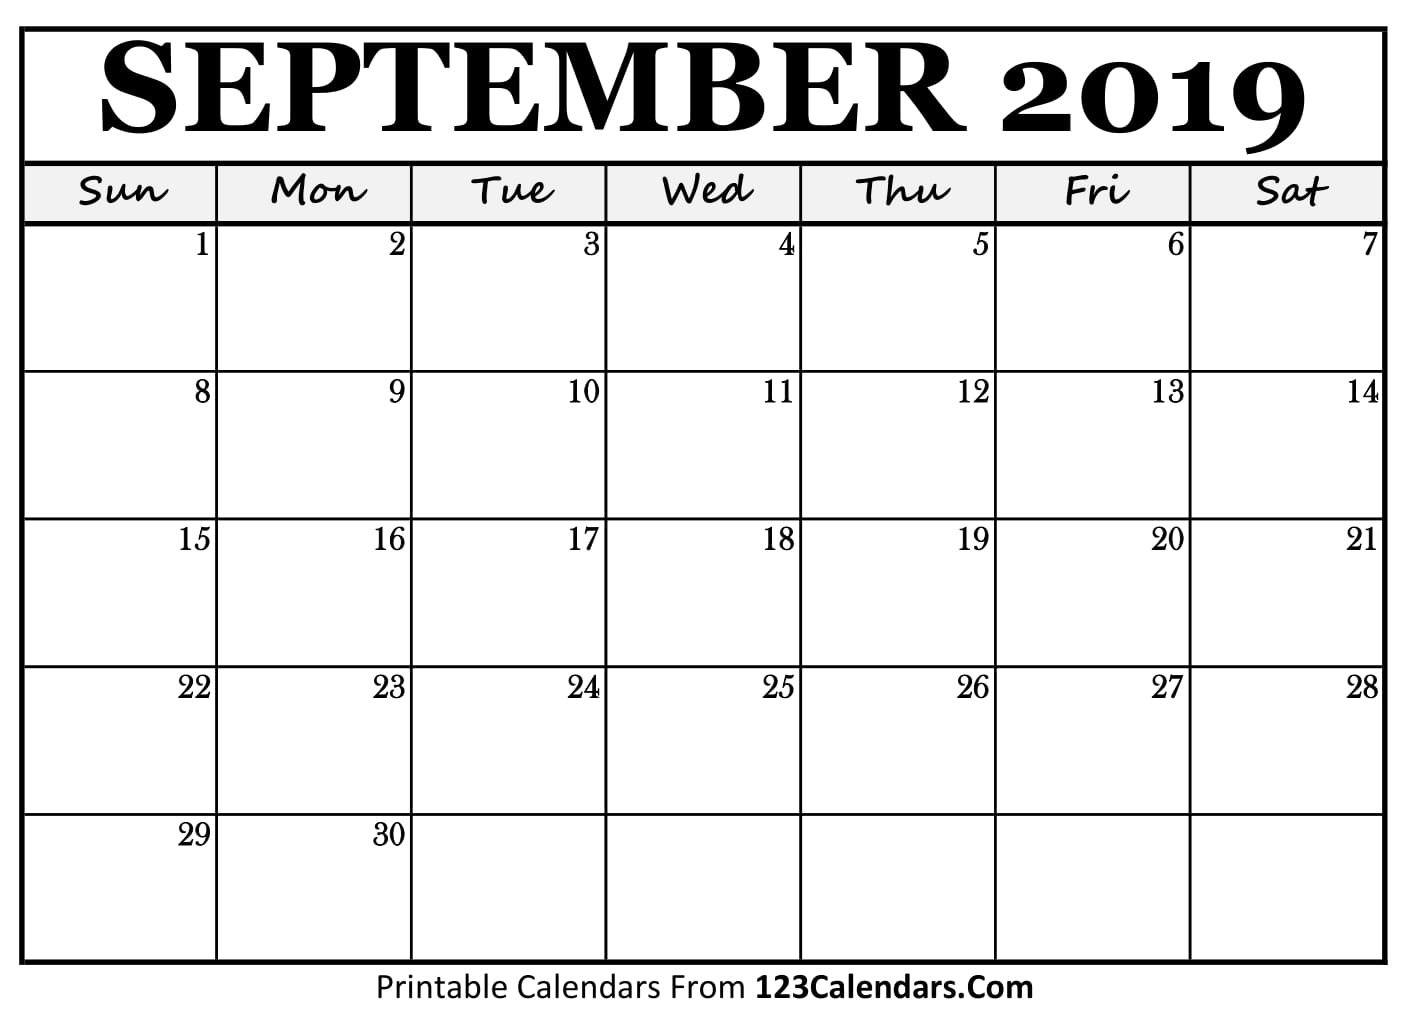 photograph relating to September Printable Calendar known as September 2019 Printable Calendar